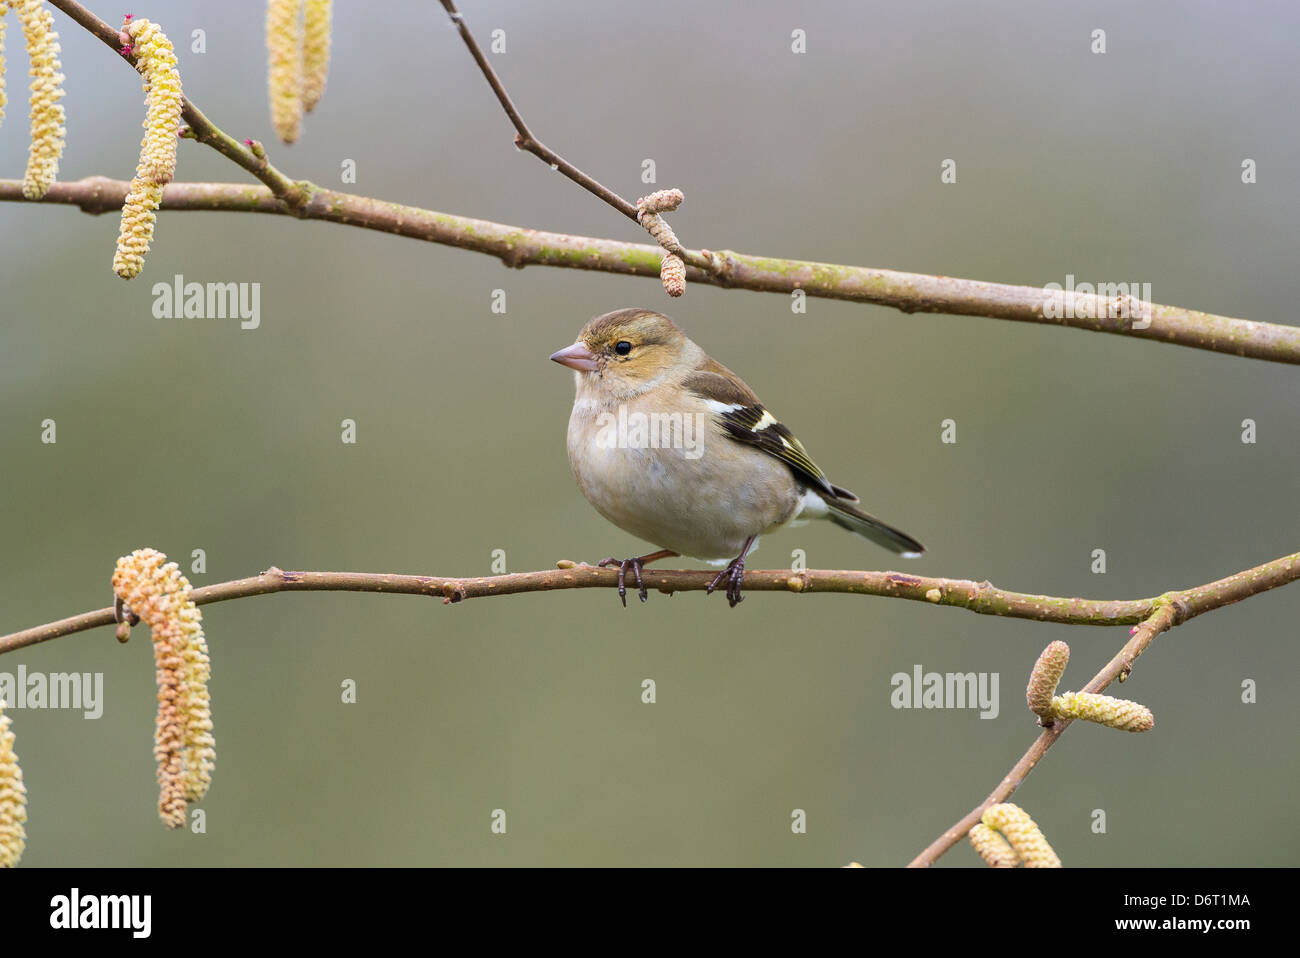 Chaffinch, Fringilla coelebs, female perched on hazel branch. - Stock Image